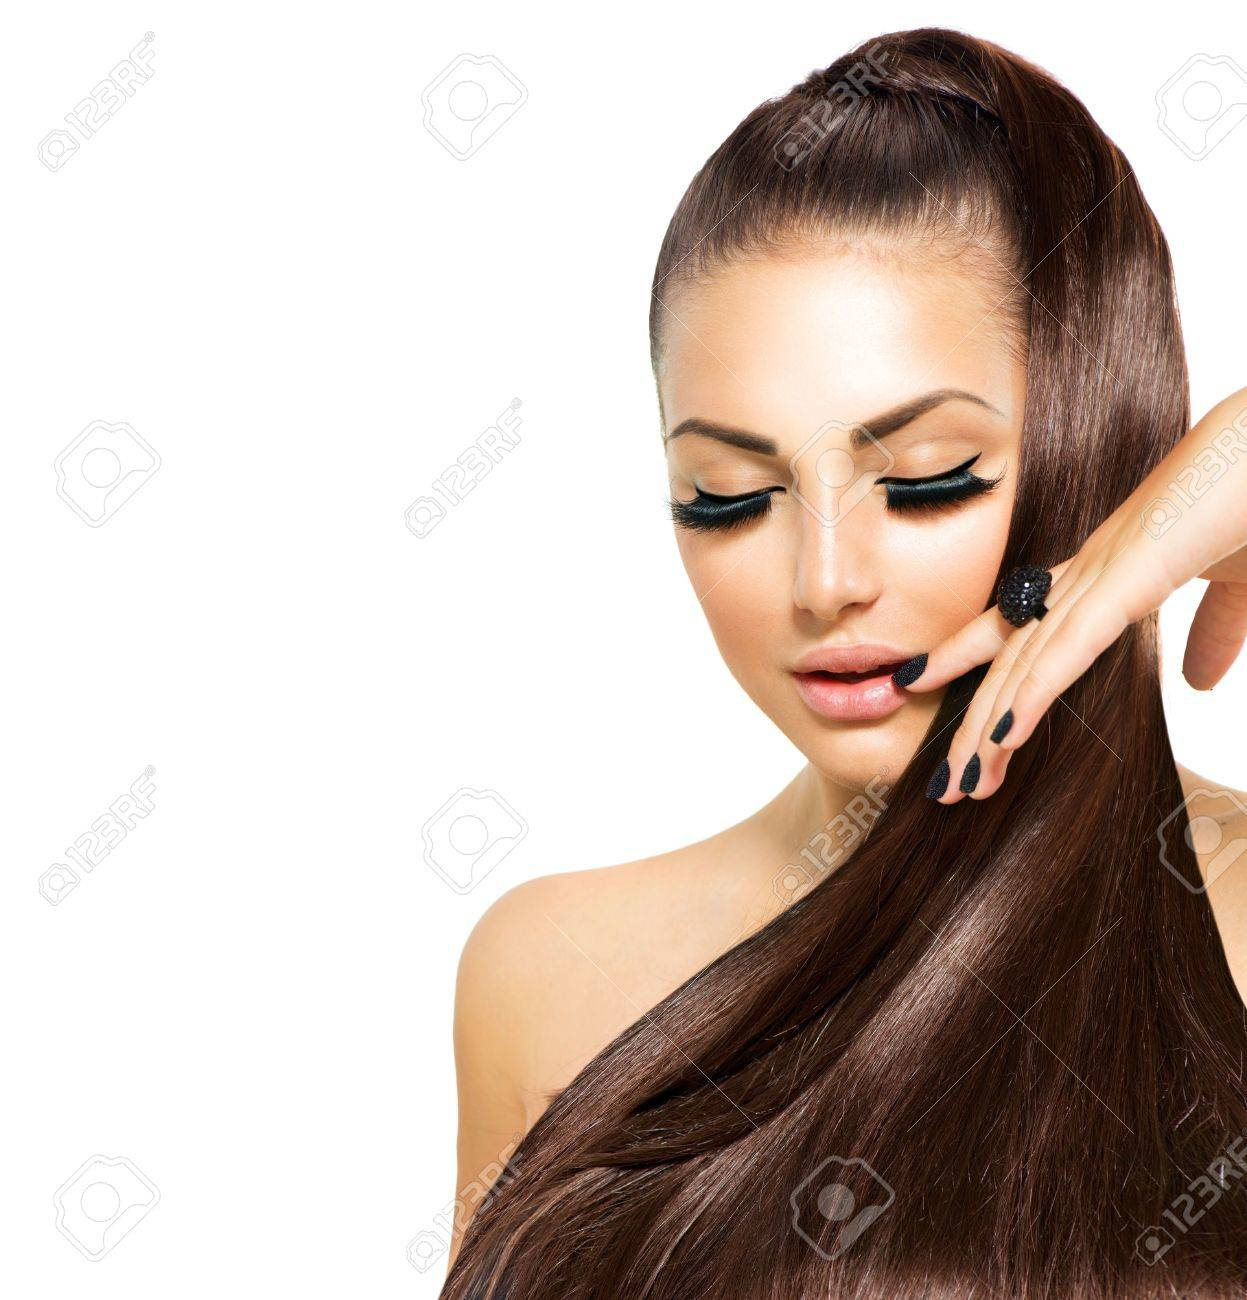 Beauty Fashion Girl with Long Hair  Trendy Caviar Black Manicure Stock Photo - 20635947